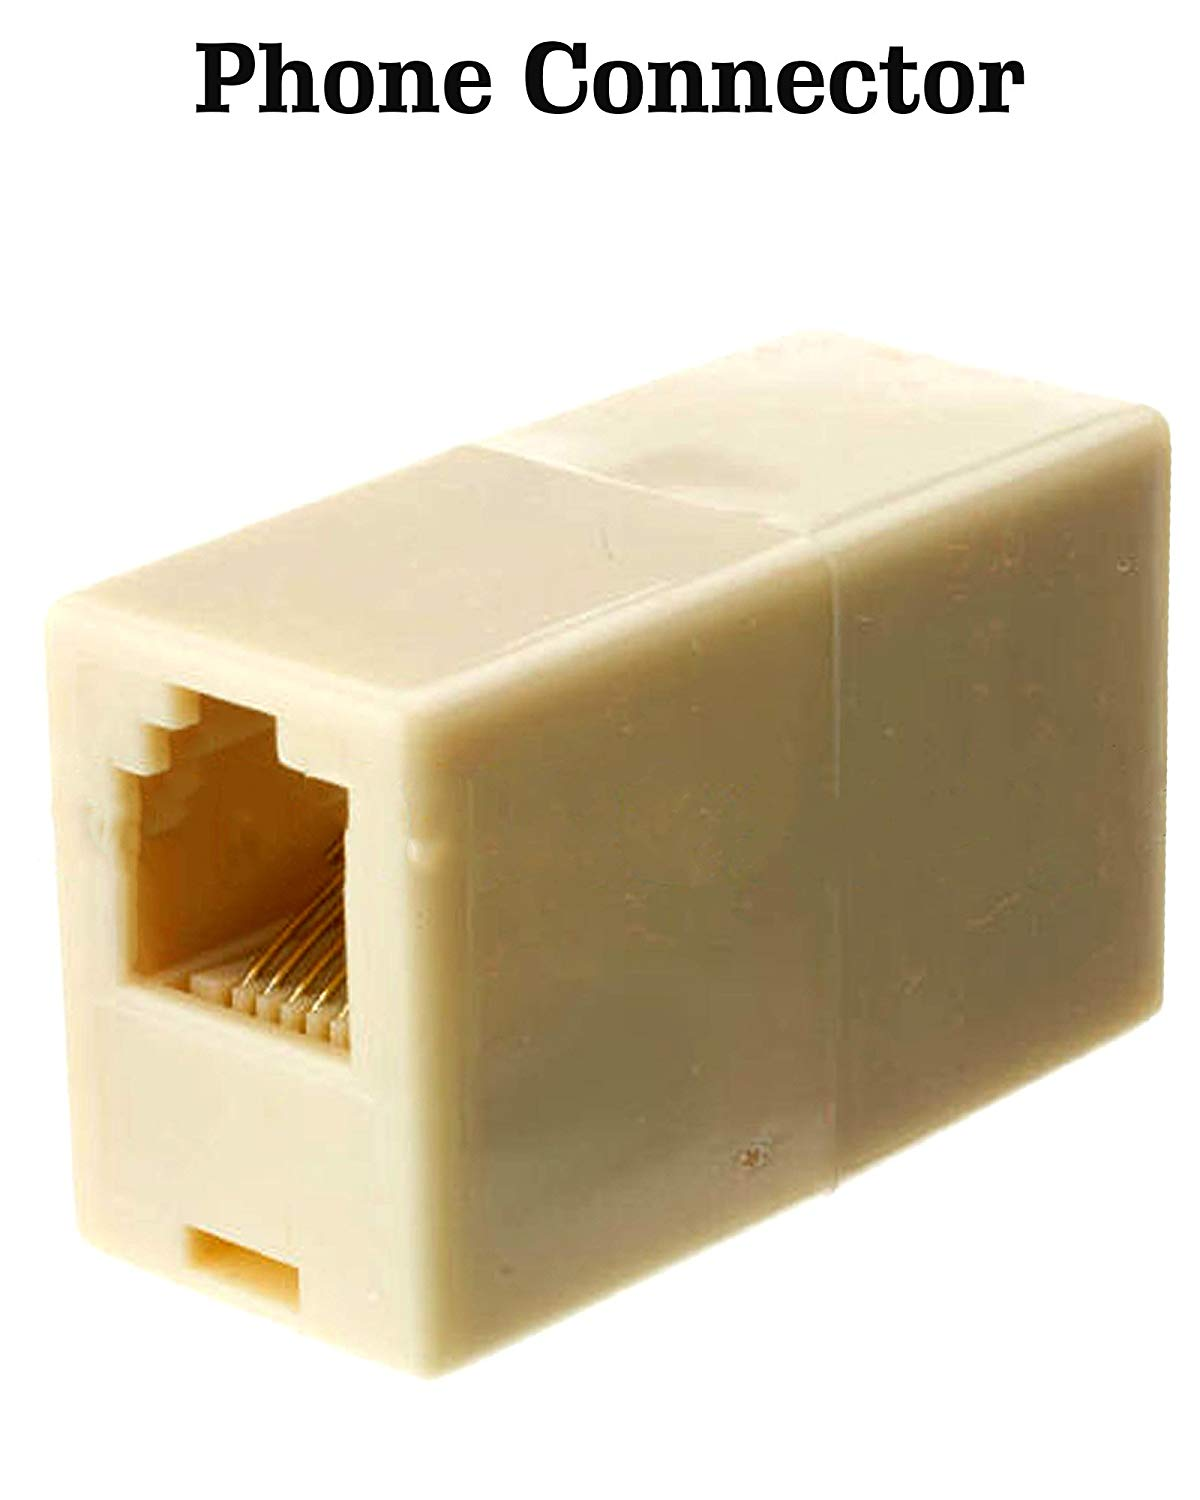 Cheap Rj11 Connector  Find Rj11 Connector Deals On Line At